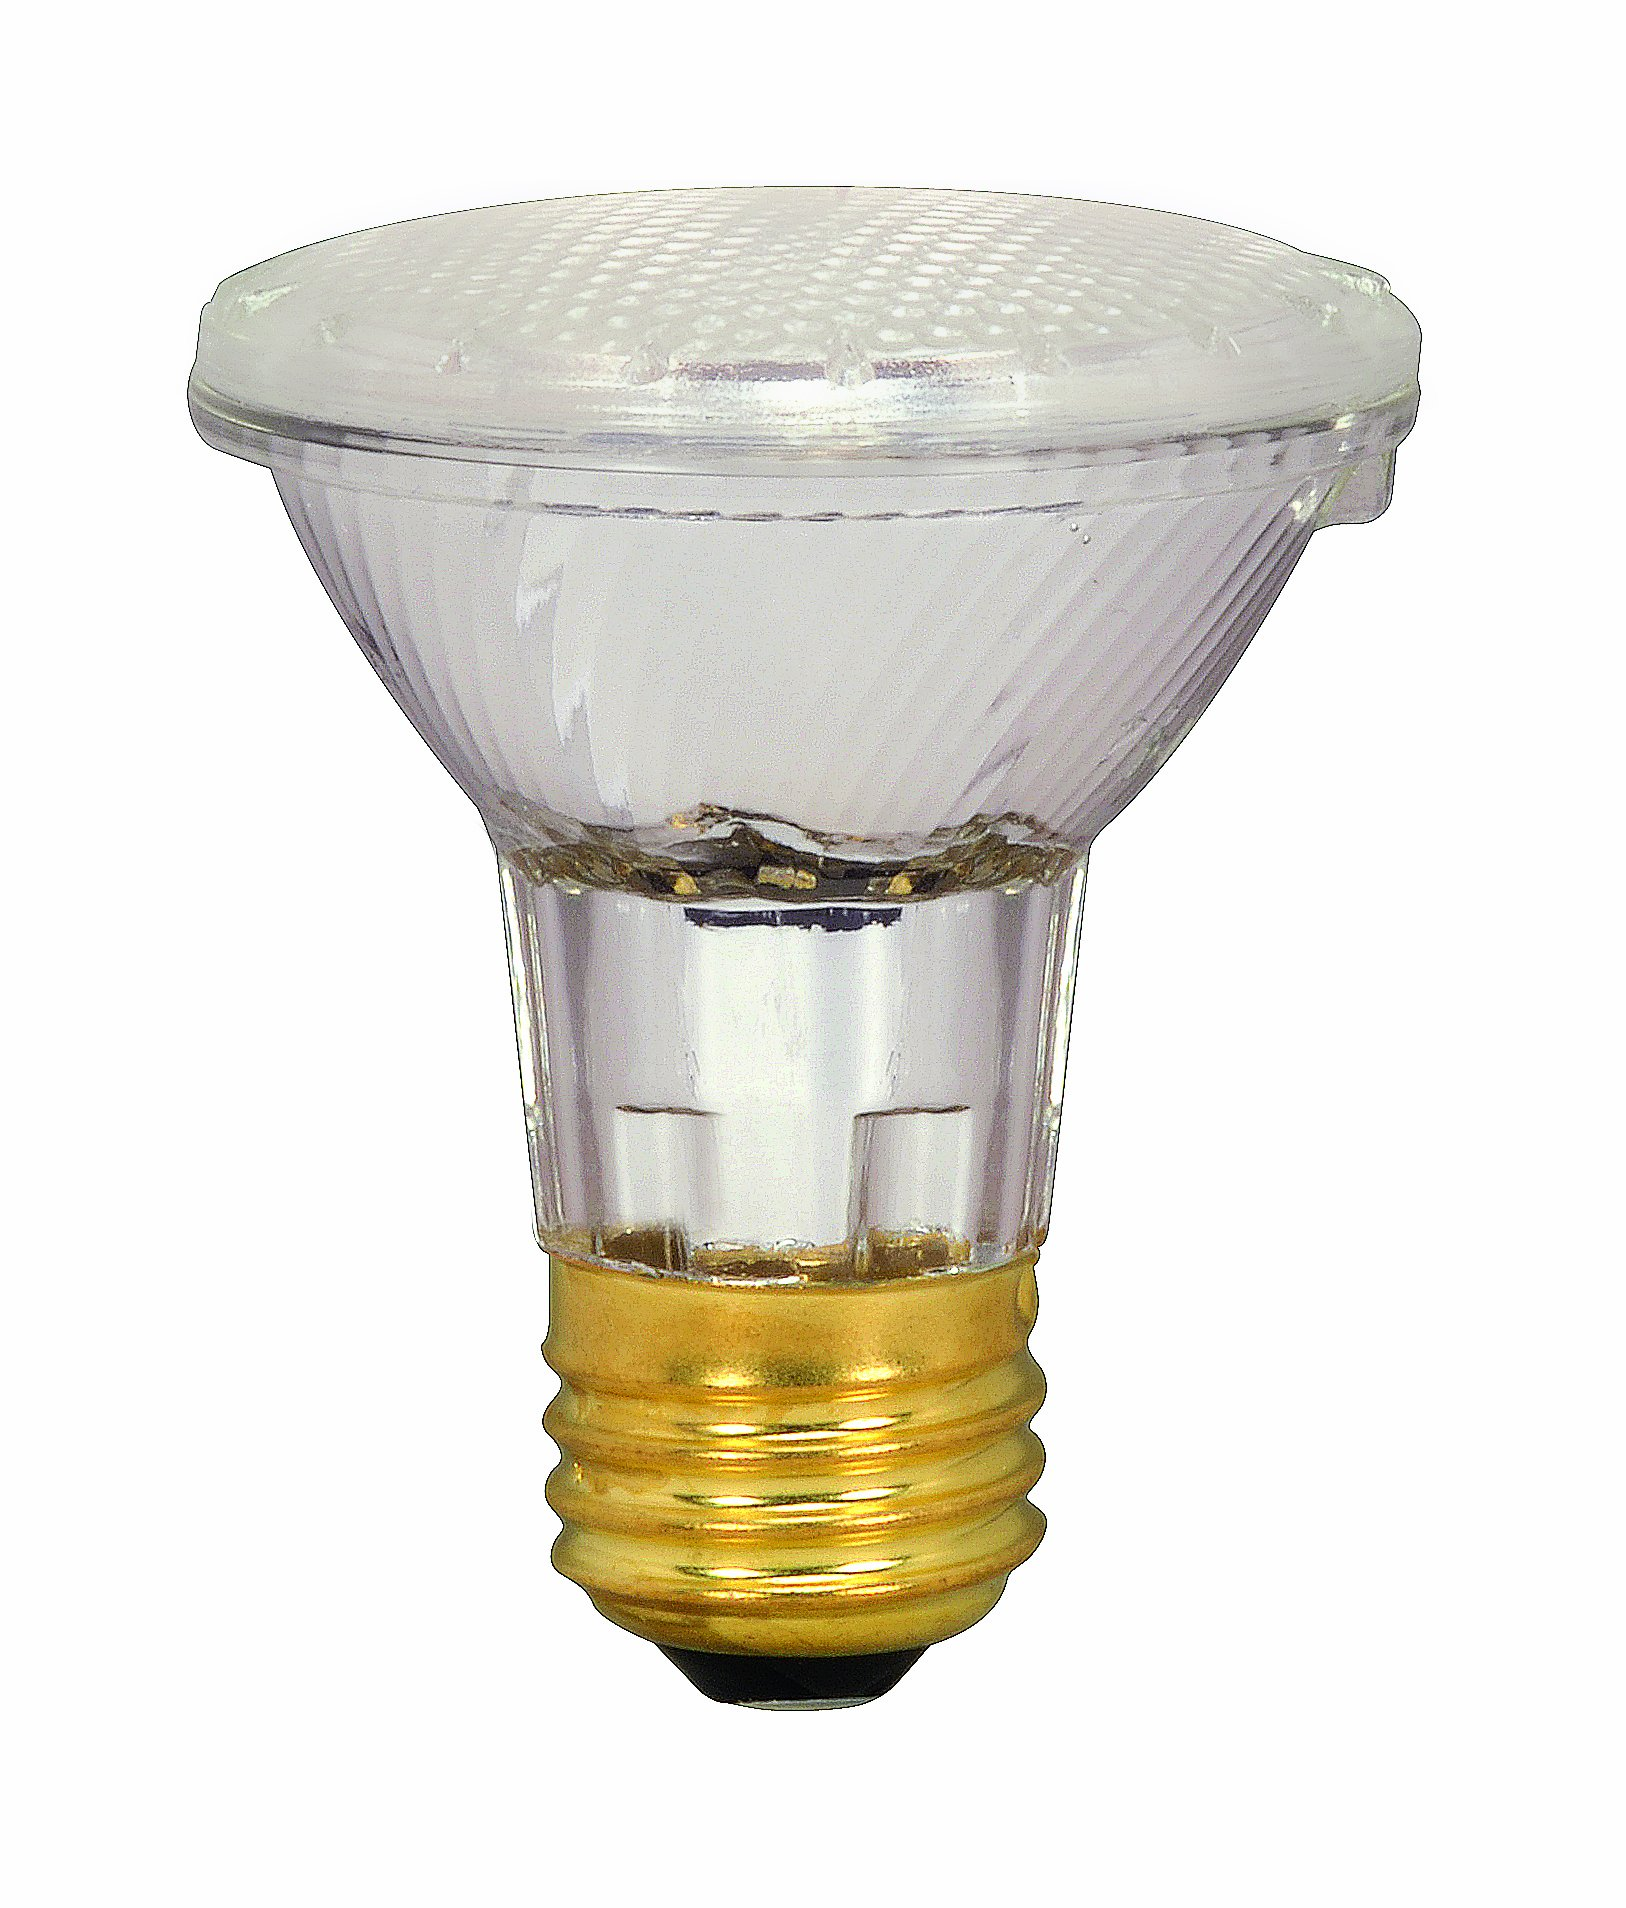 Satco S2232 39 Watt (50 Watt) 530 Lumens PAR20 Halogen Narrow Flood 34 Degrees Clear Light Bulb, Dimmable